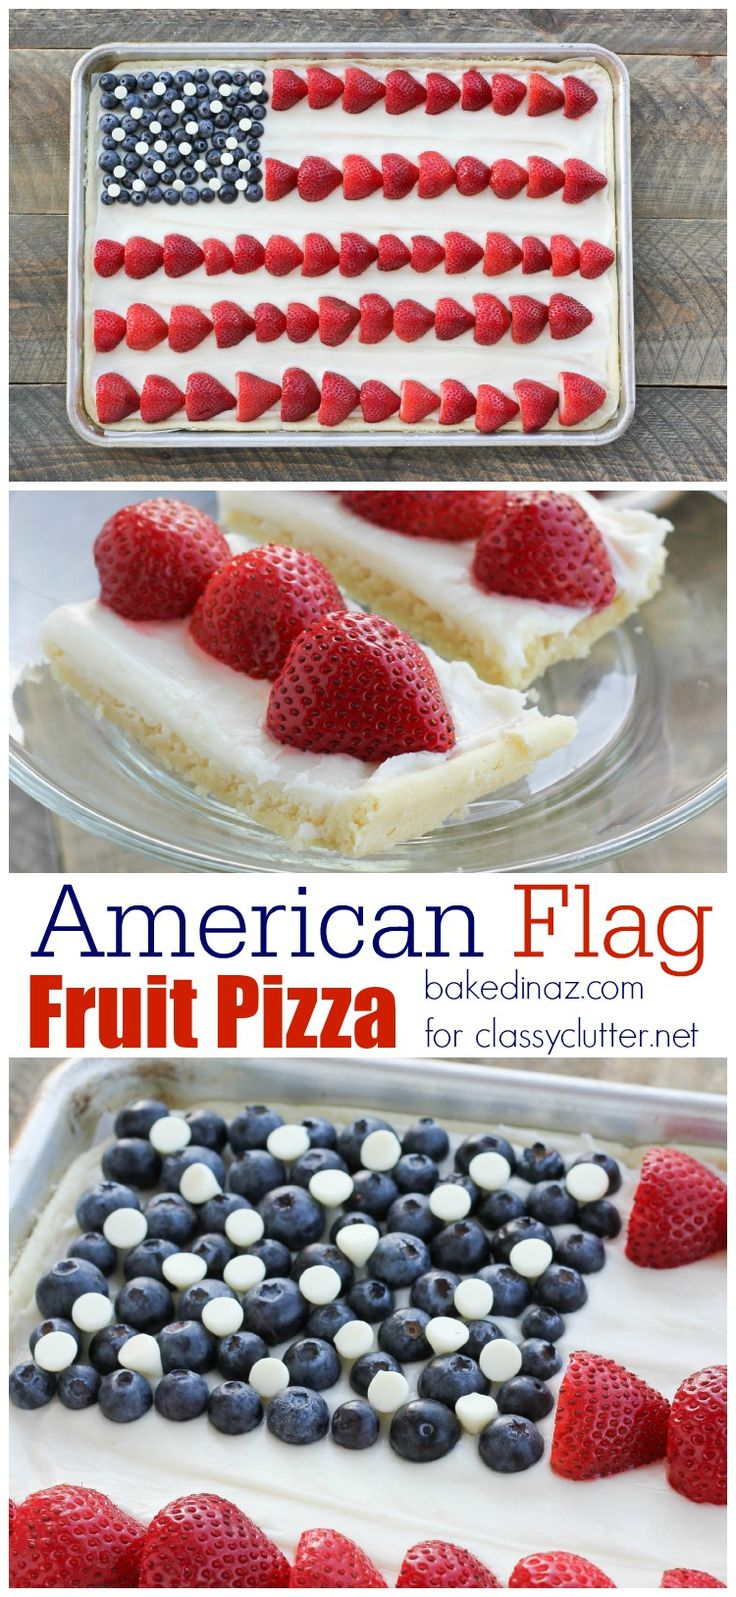 American Flag Fruit Pizza - This festive dessert looks and tastes amazing! Perfect for 4th of July BBQs and celebrations!